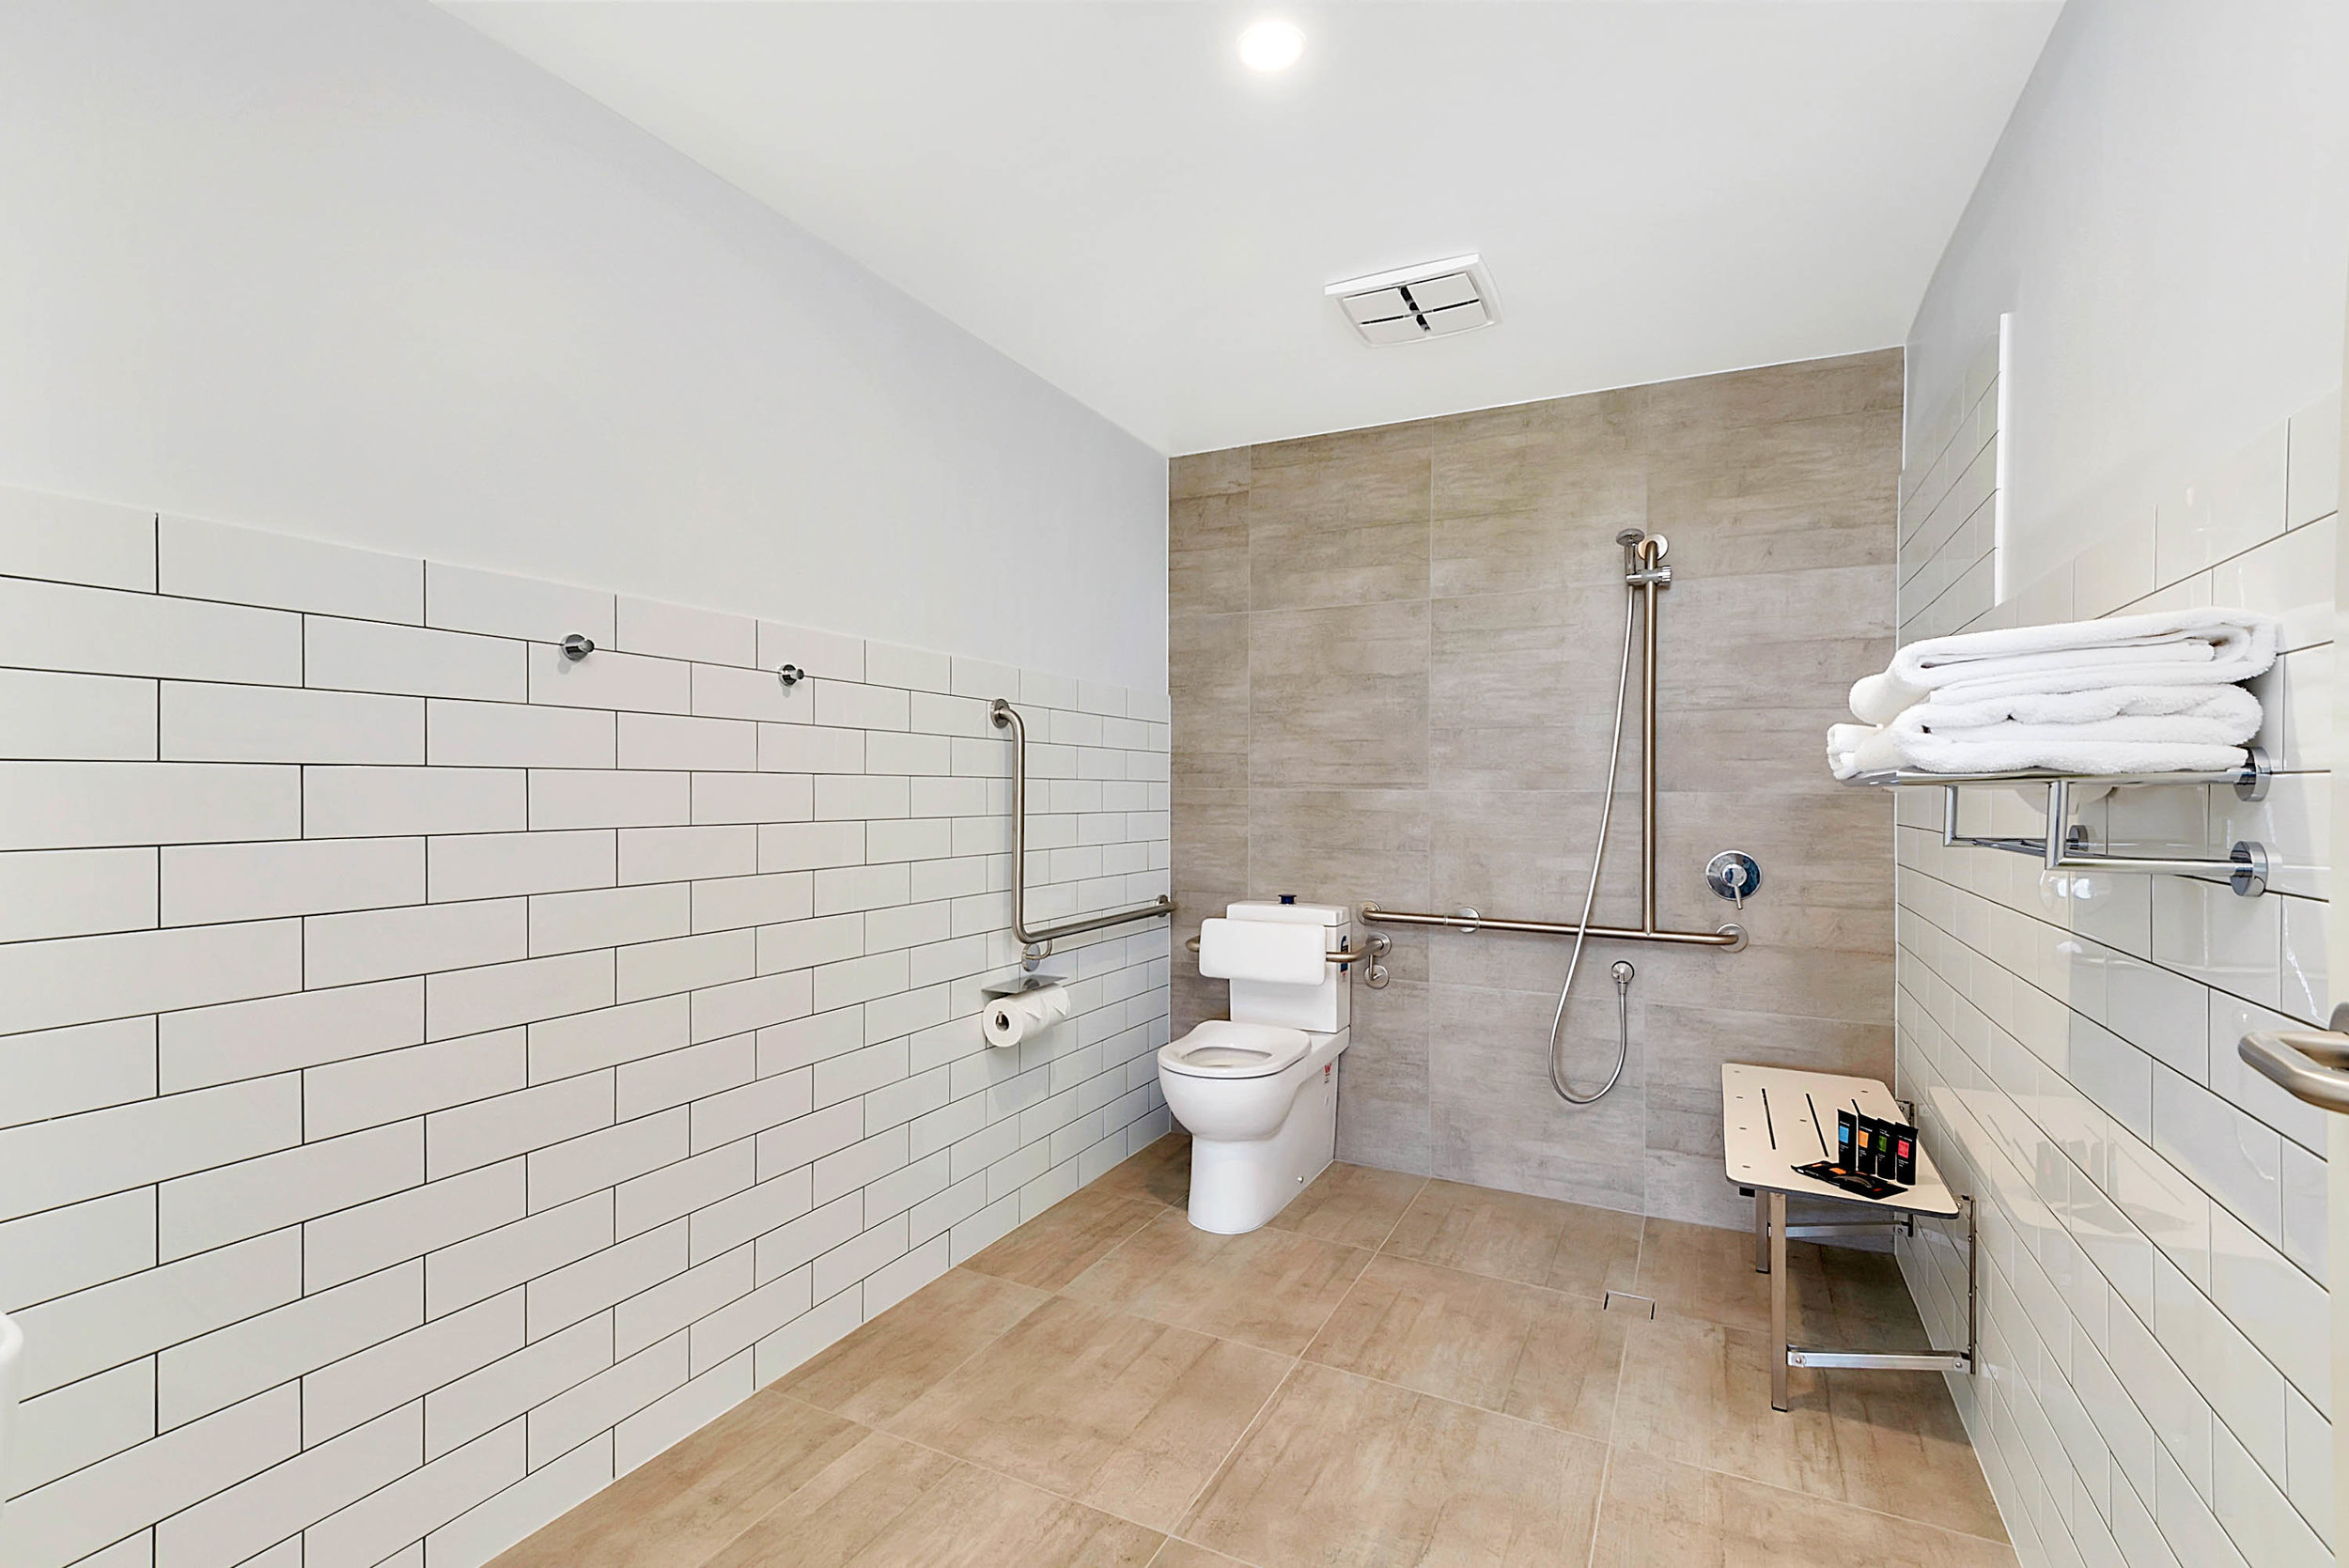 The accessibility bathroom has safety bars in the shower and toilet with adequate clear turning space and built-in shower transfer (AS 1428.1 compliant). and extra floor mats can be provided on request for the bathroom